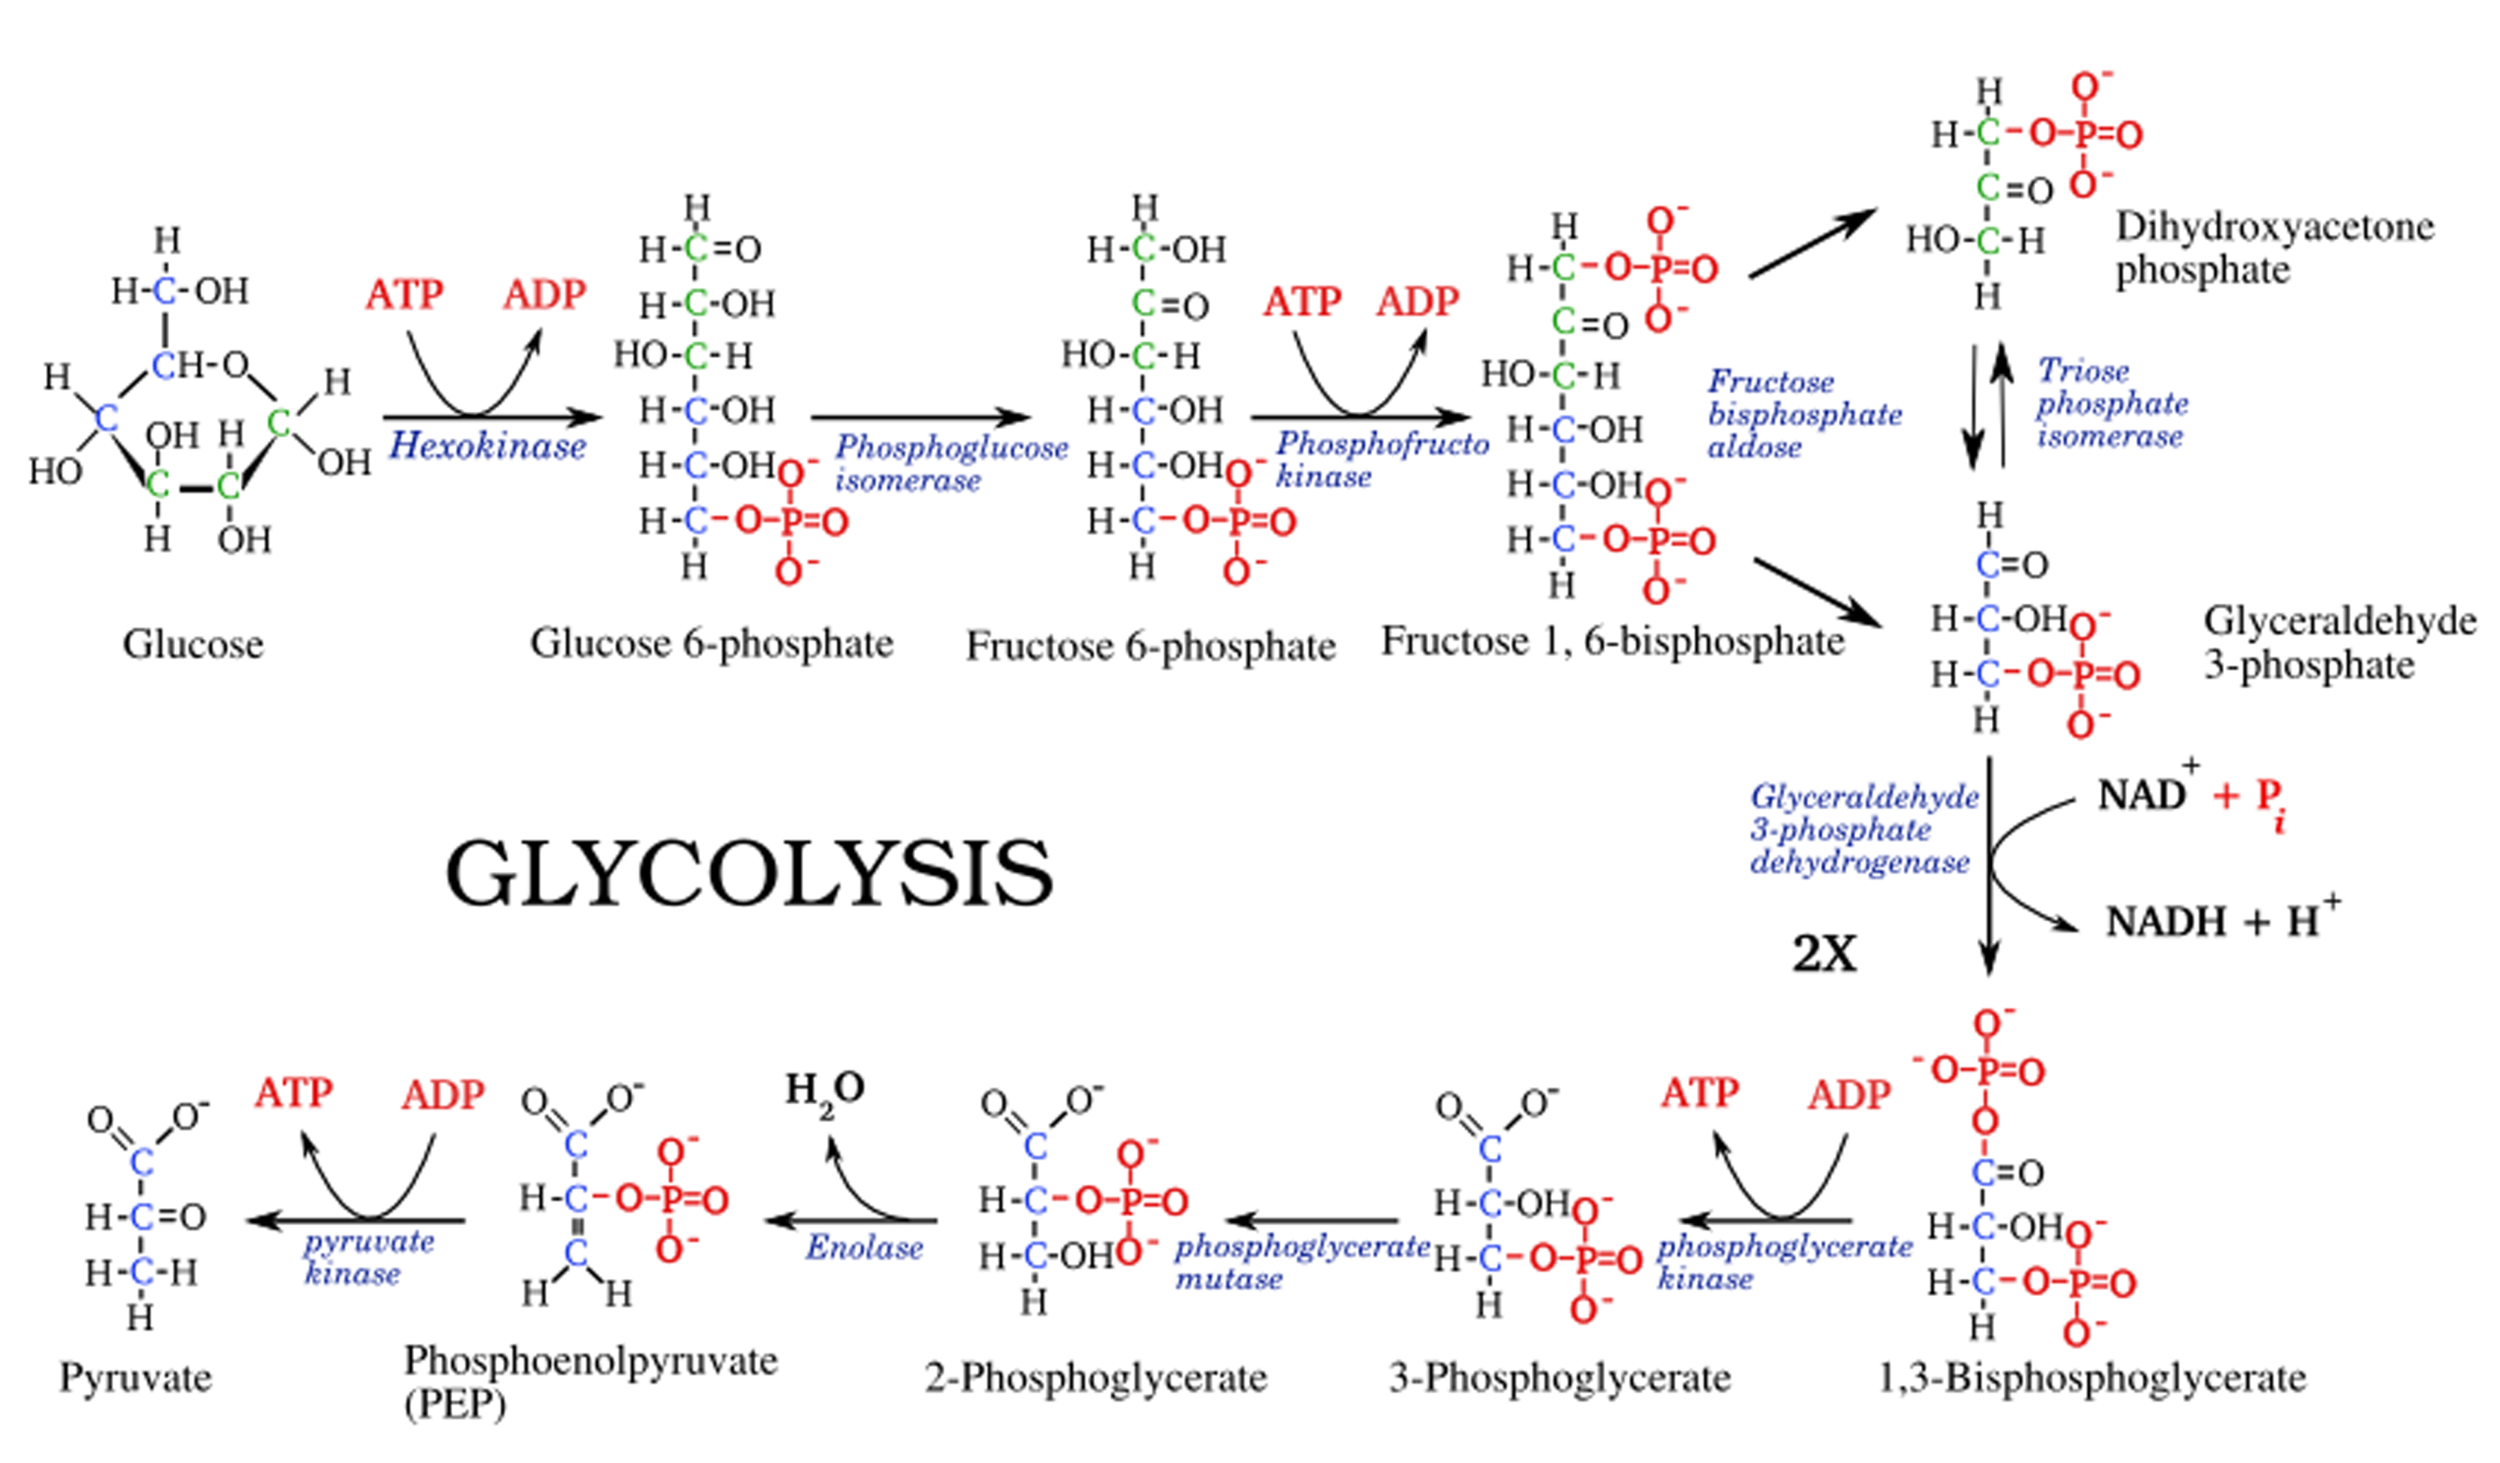 Glycolysis1.png